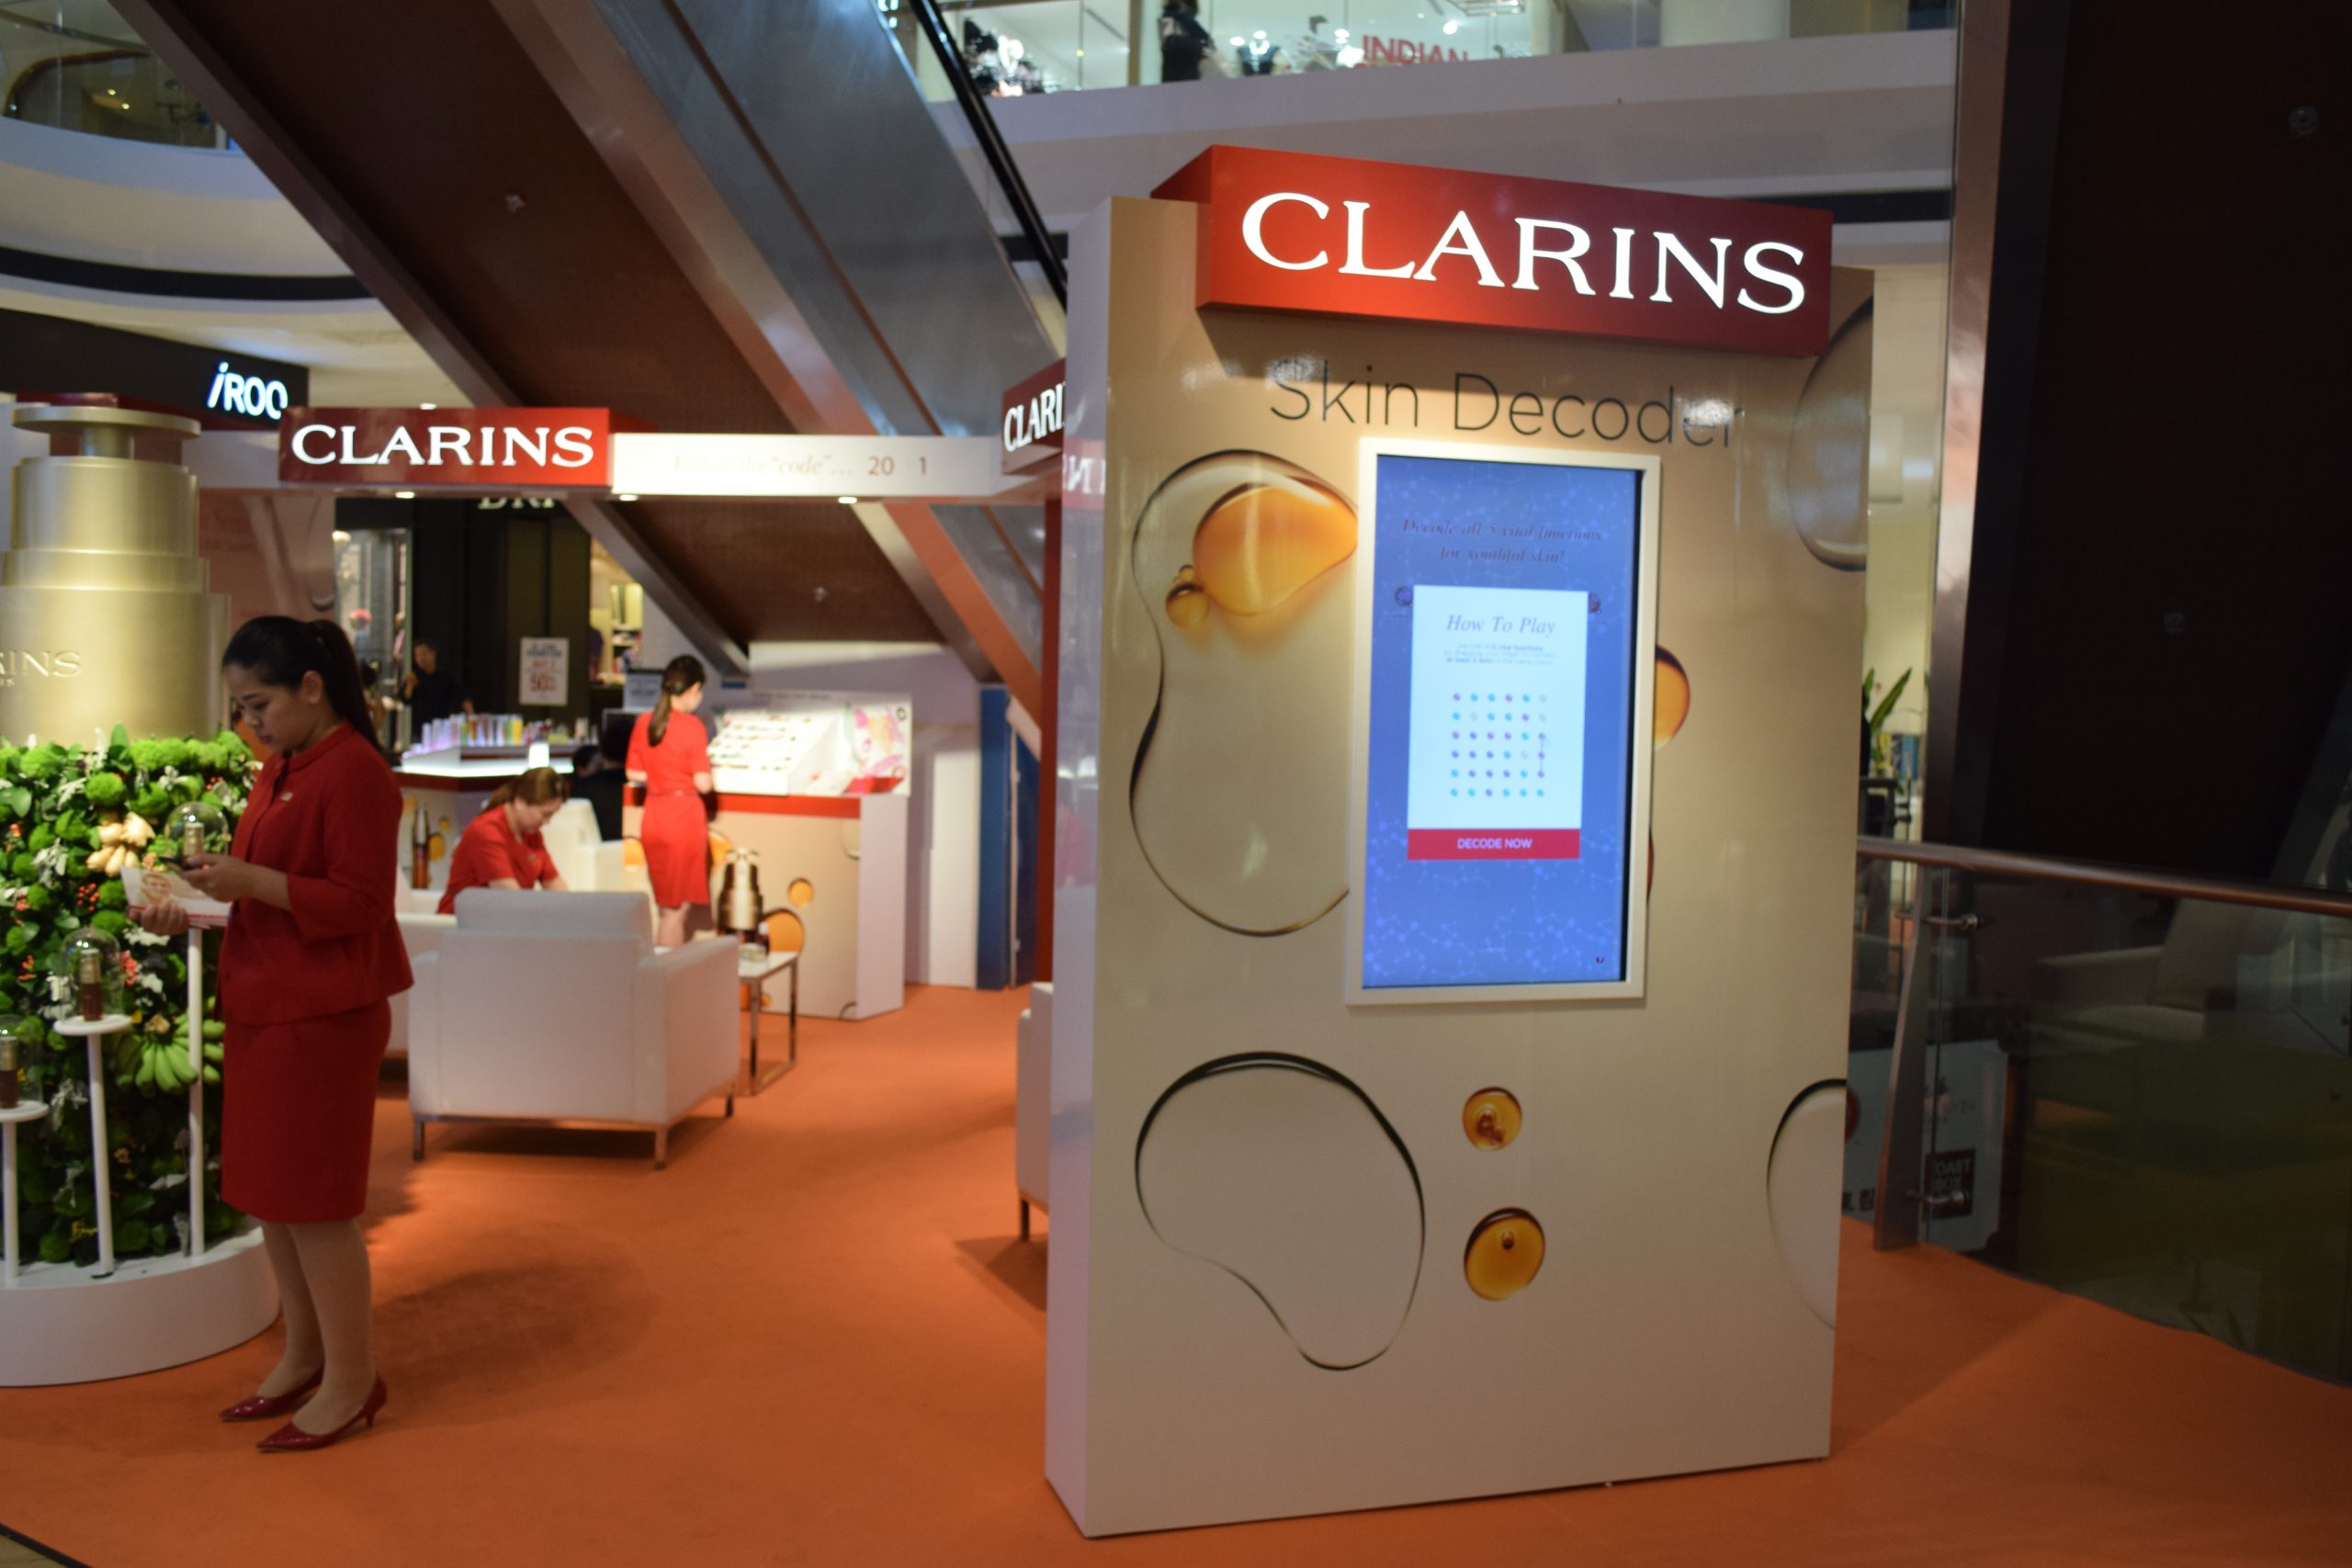 The clarins digital game (O2O) in a shopping mall